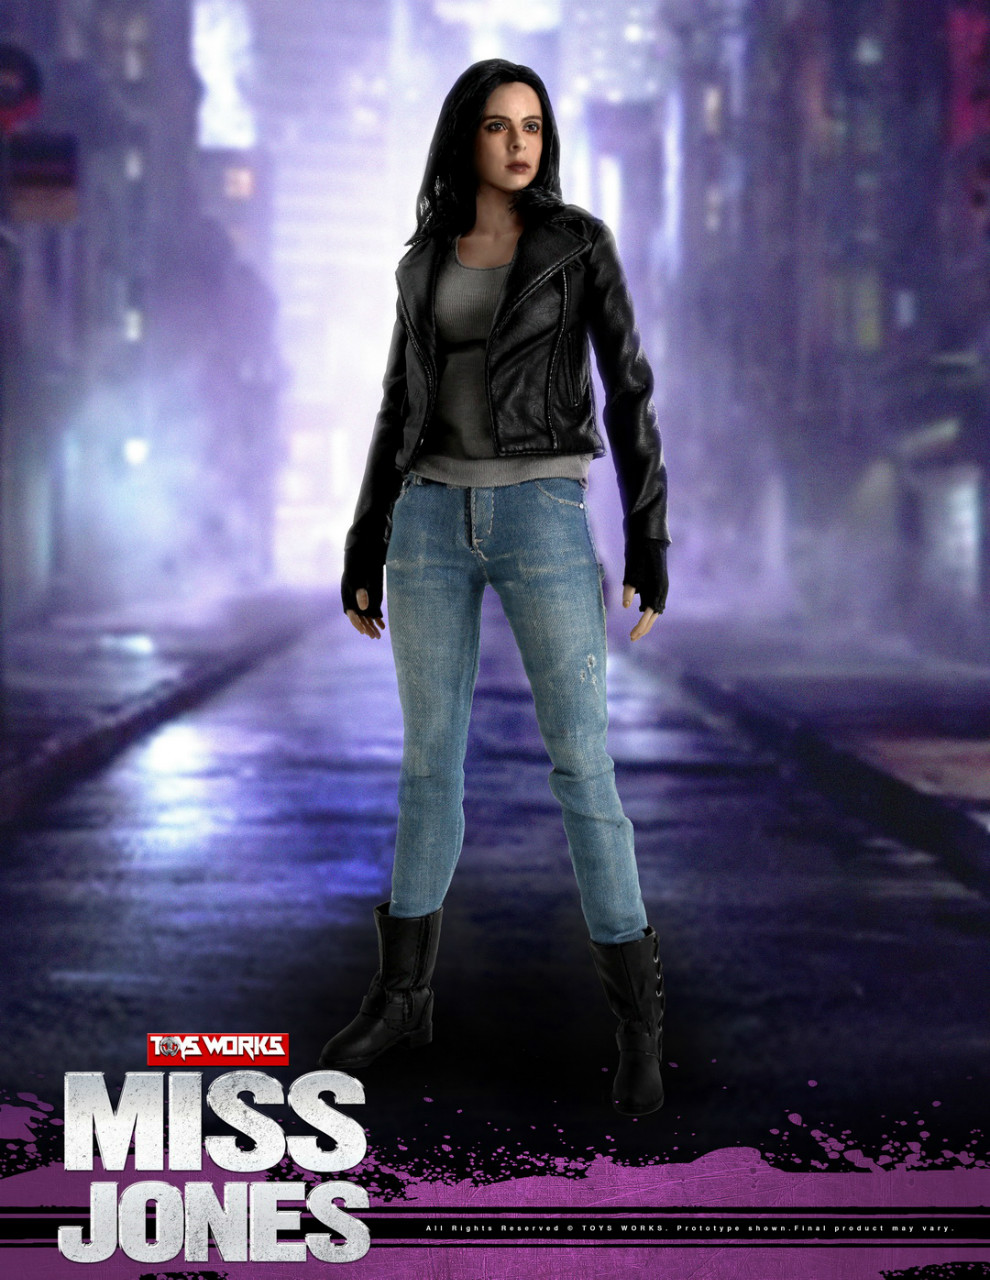 NEW PRODUCT: TOYS WORKS New: 1/6 Miss Jones Miss Jones can move TW007 19163611